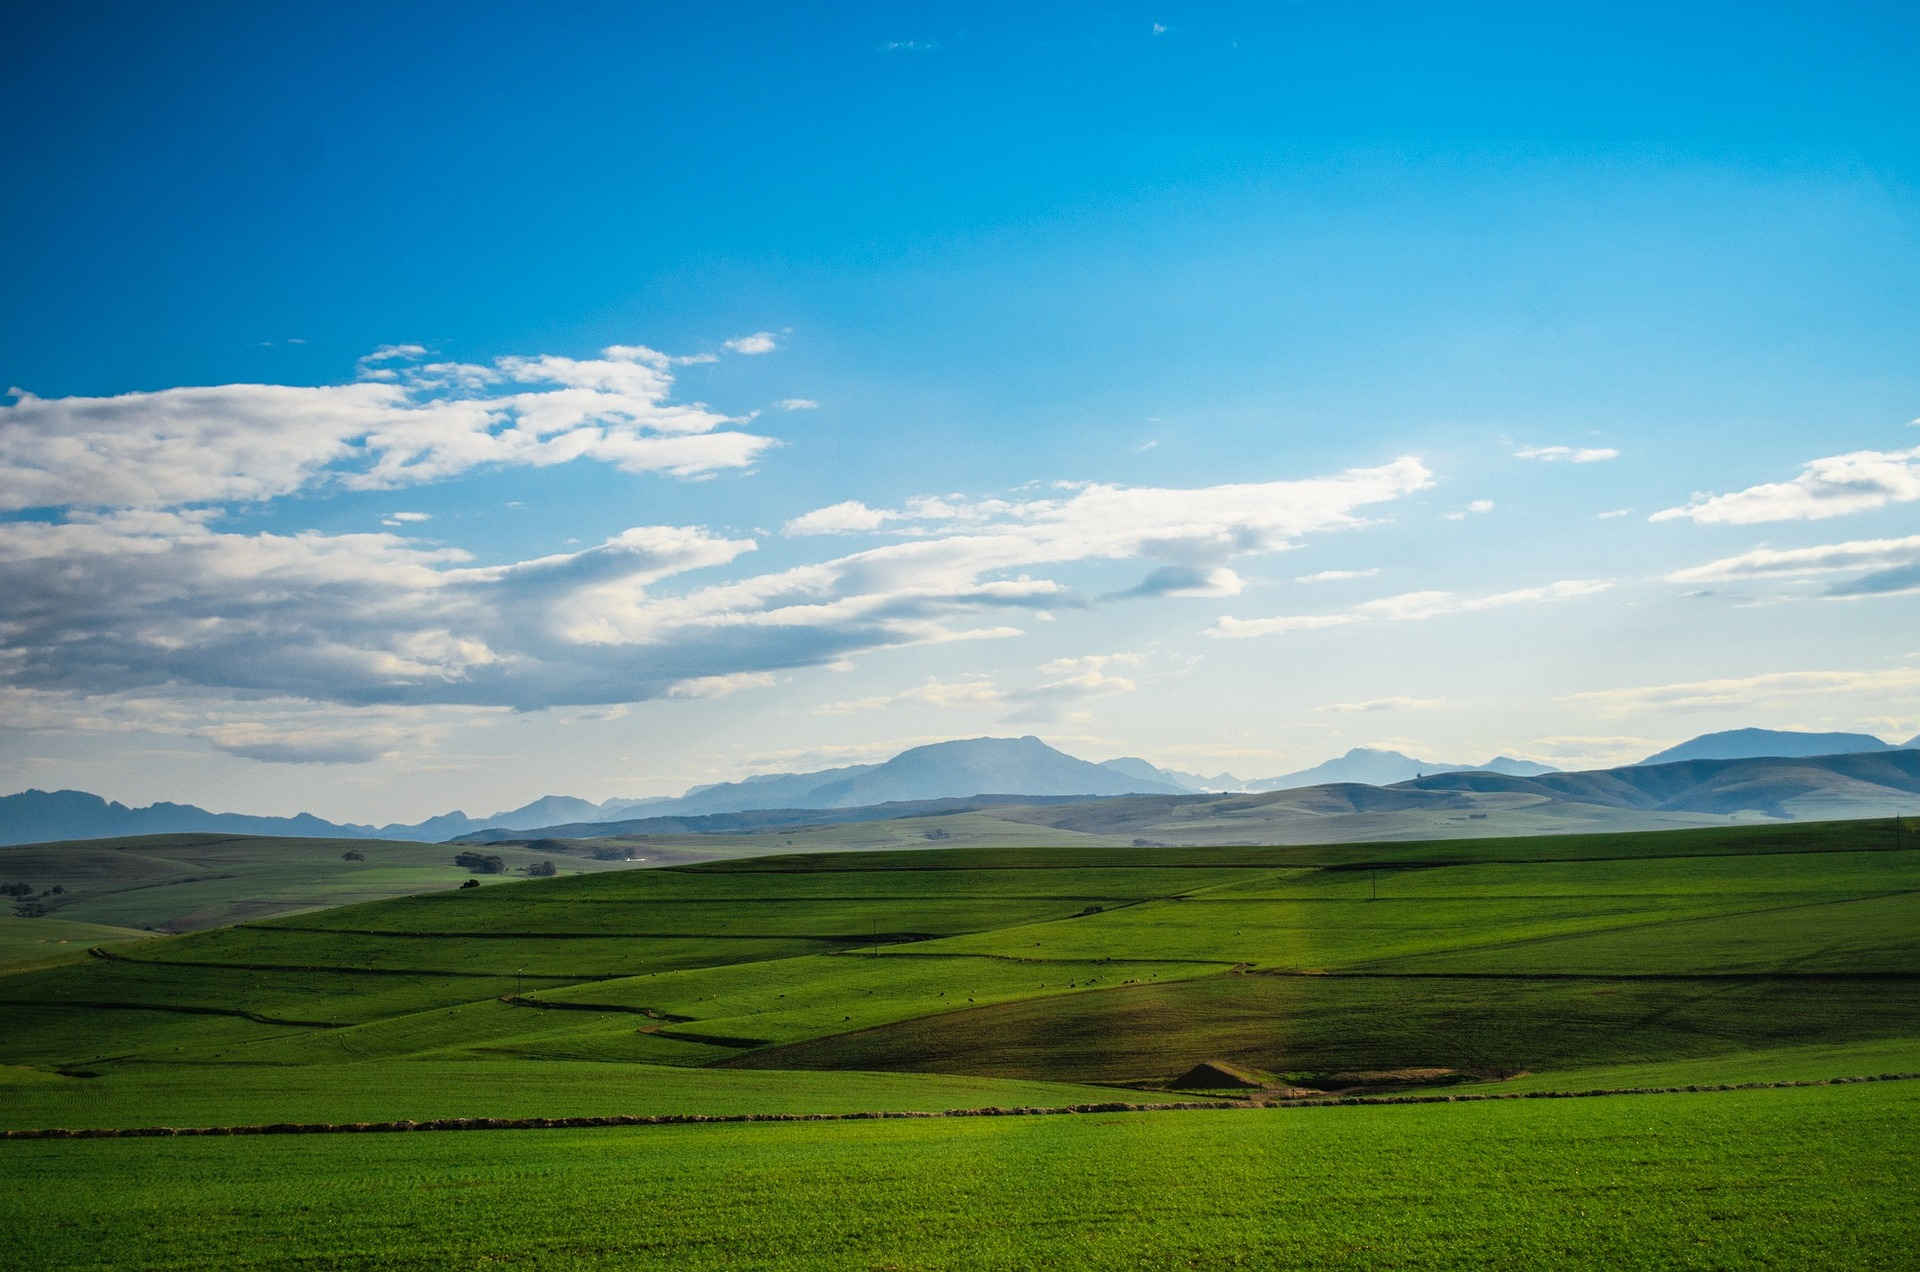 pasture fields and blue sky with white clouds